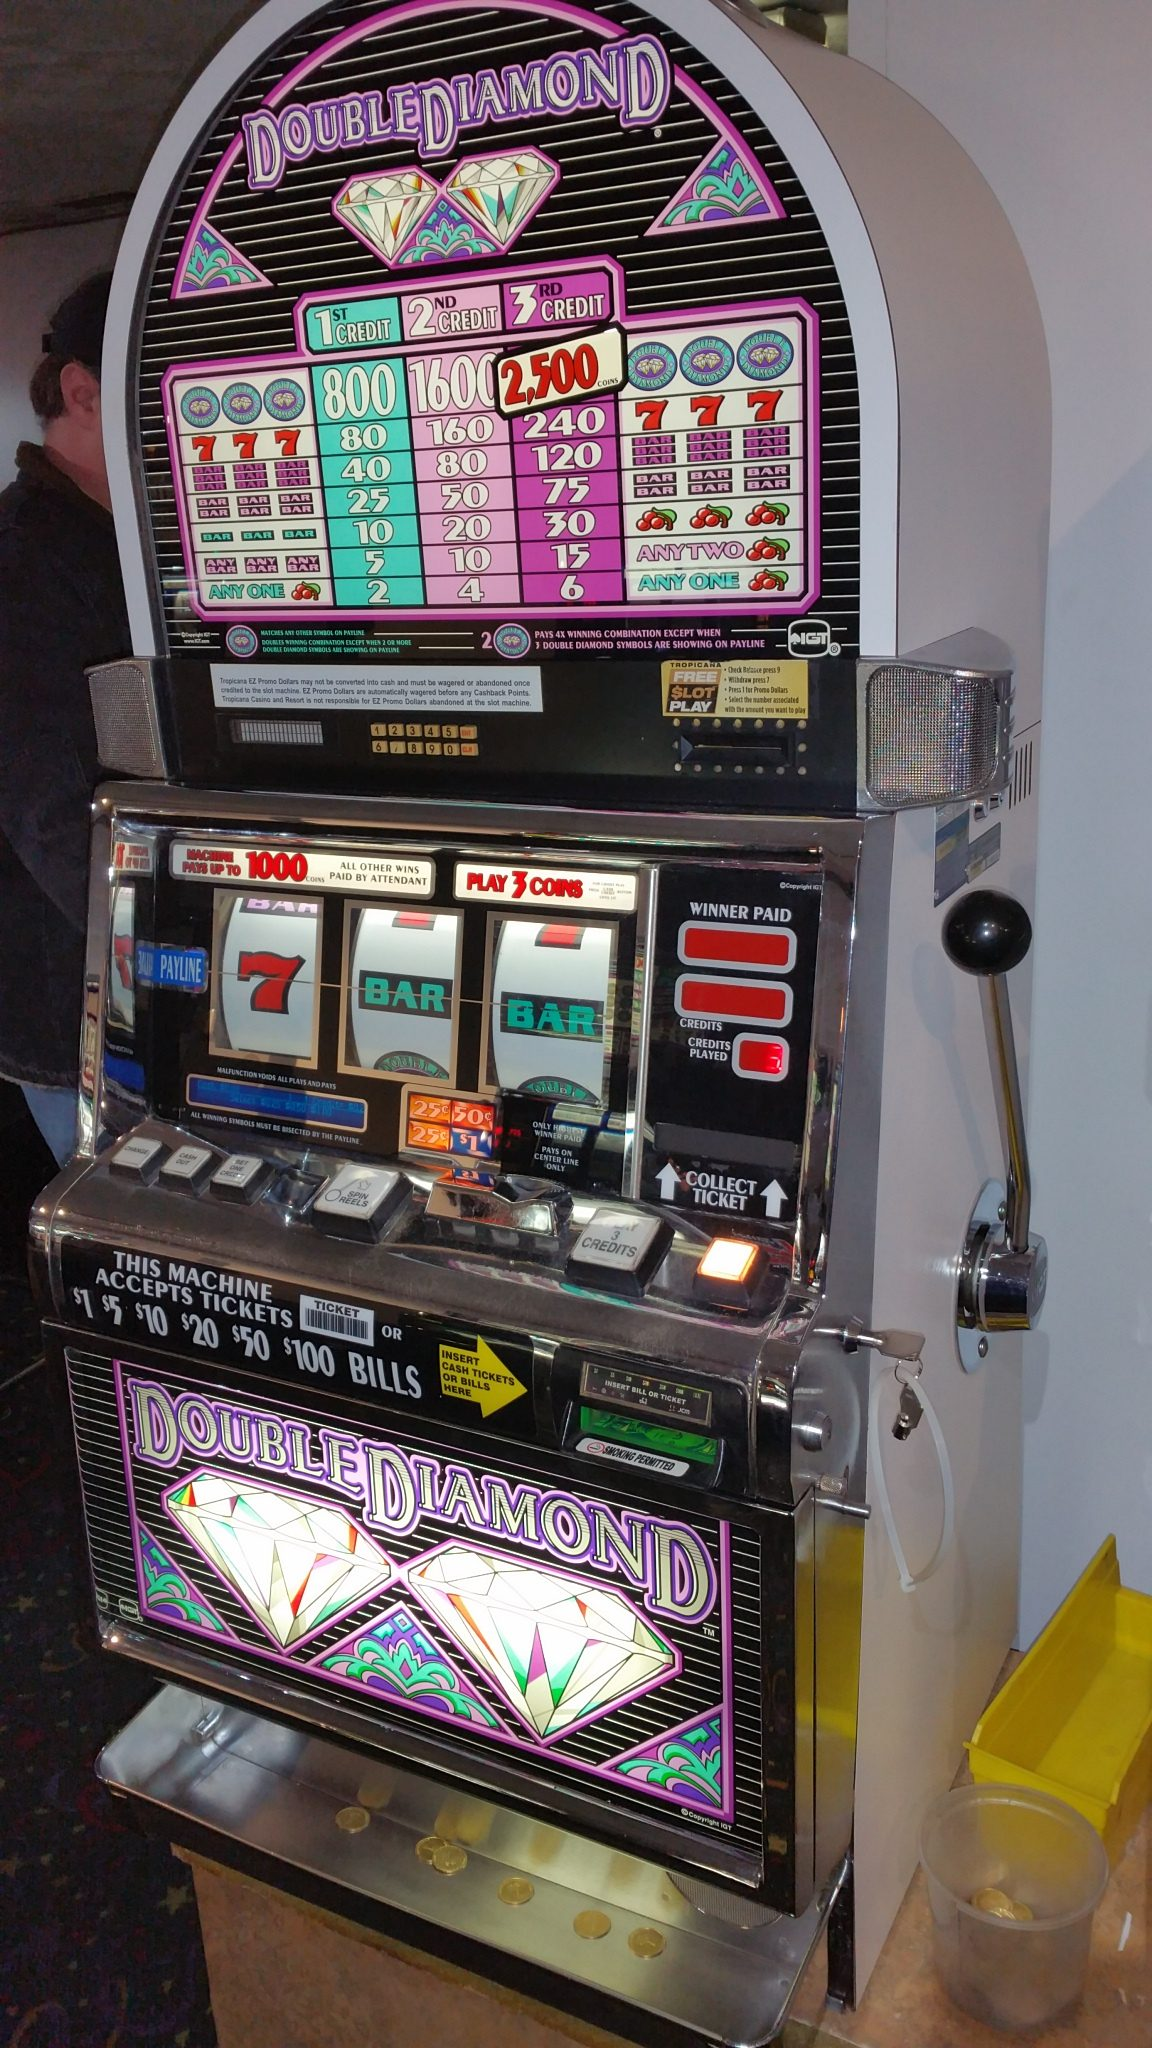 dublin diamonds slot machine